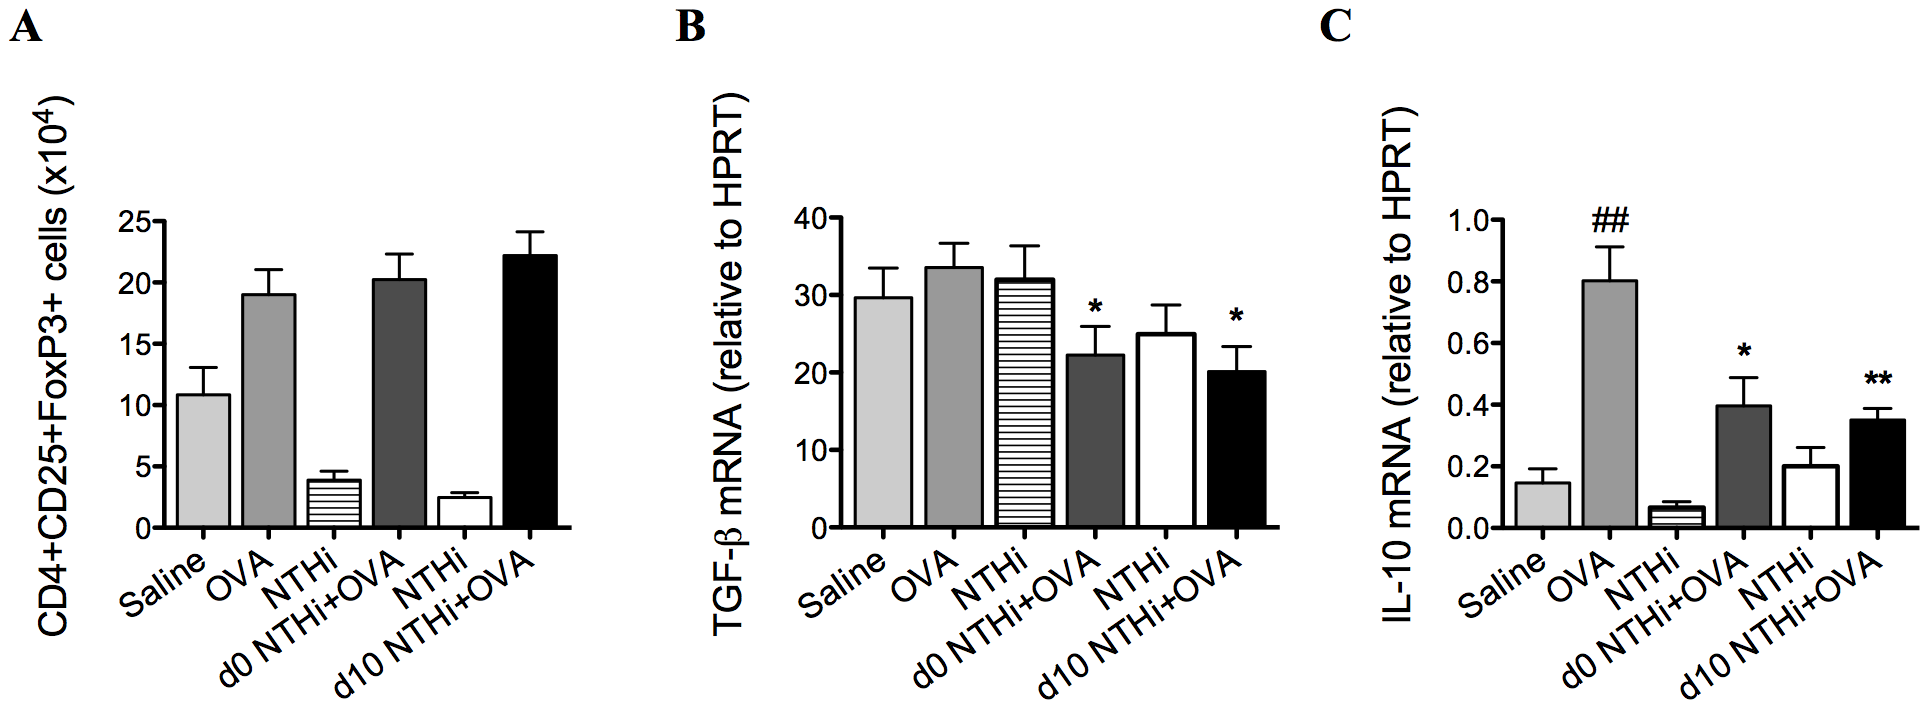 NTHi infection does not affect T regulatory cells in the suppression of AAD.